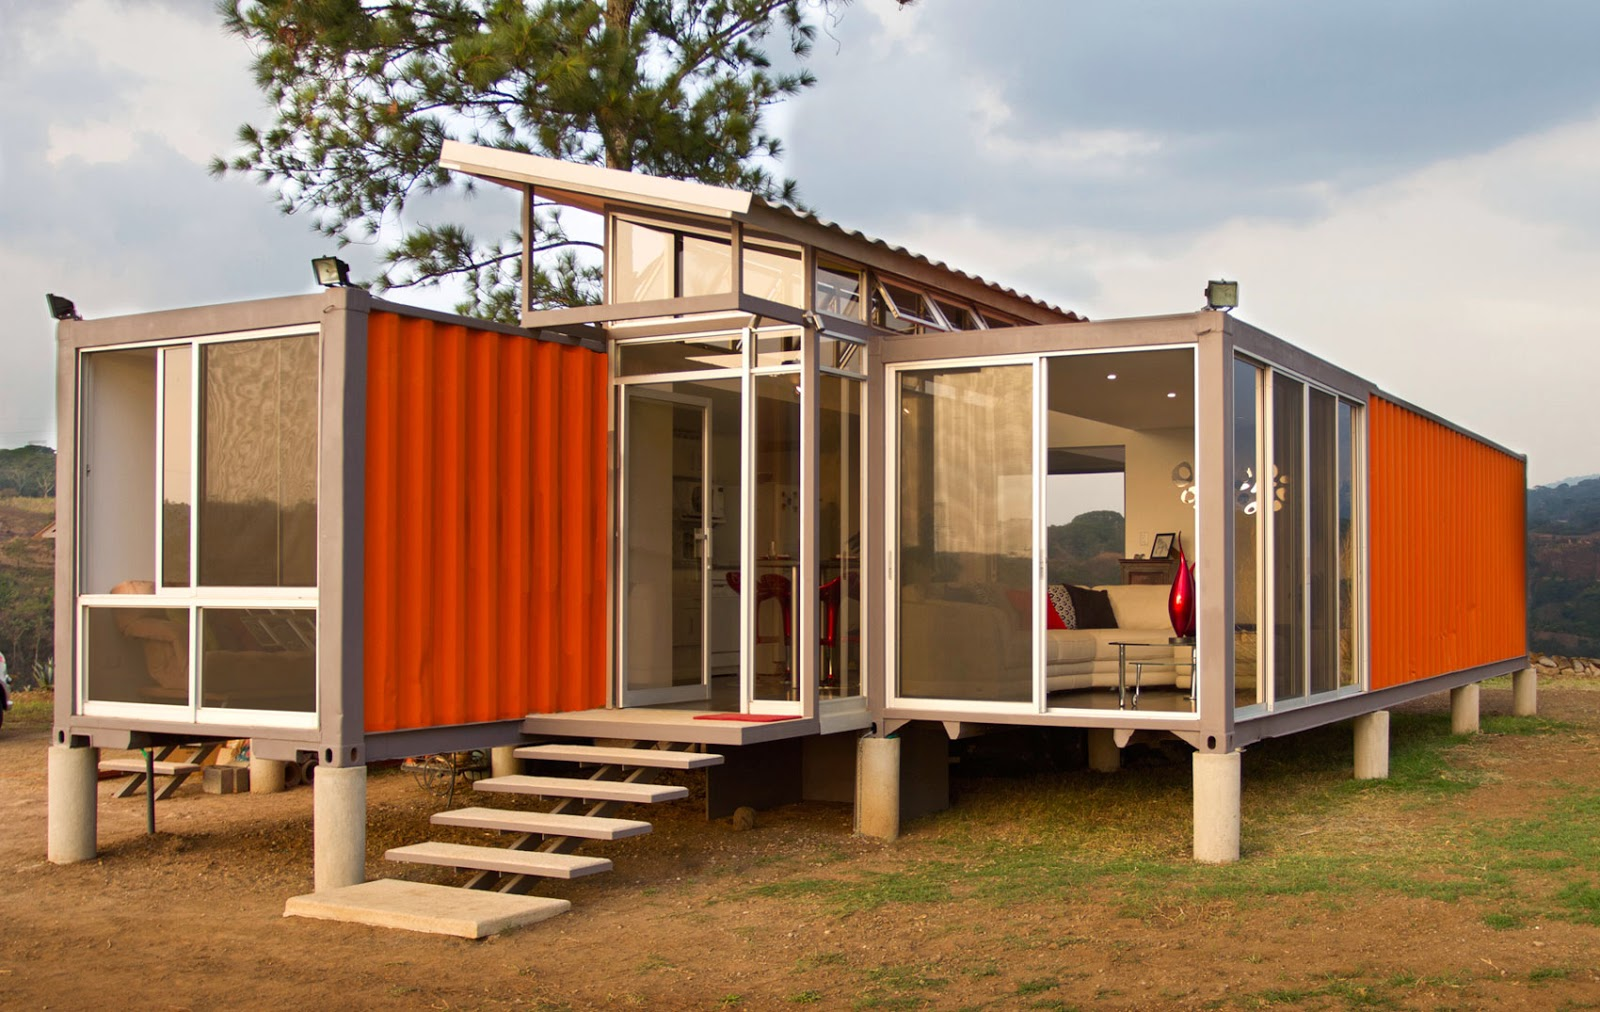 5 shipping container homes that inspire your inner architect - Cargo container home builders ...